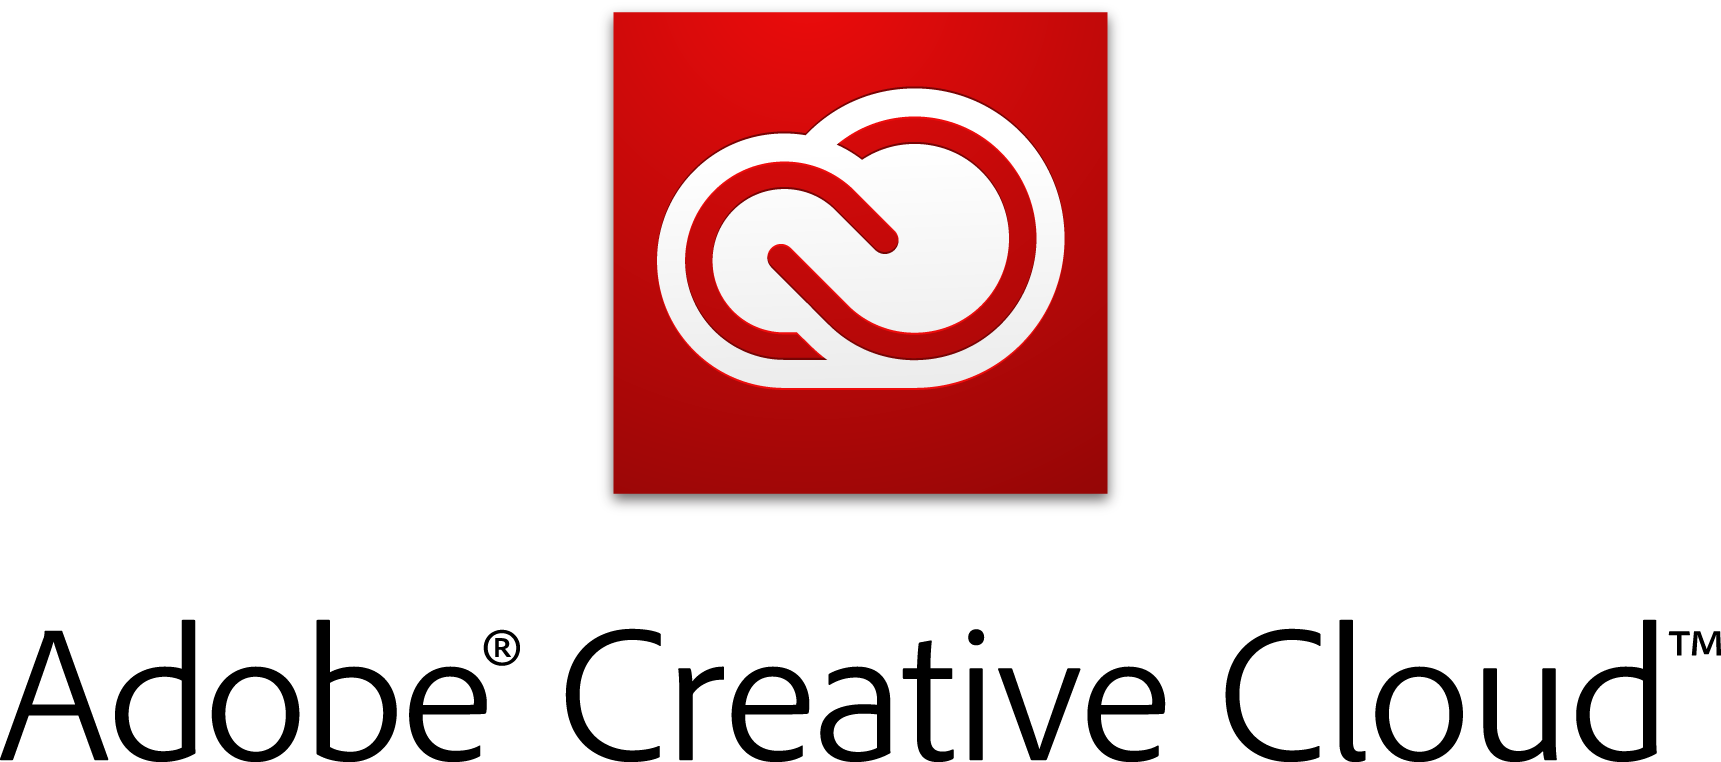 Adobe_Creative_Cloud_logotype_with_icon_RGB_vertical.png